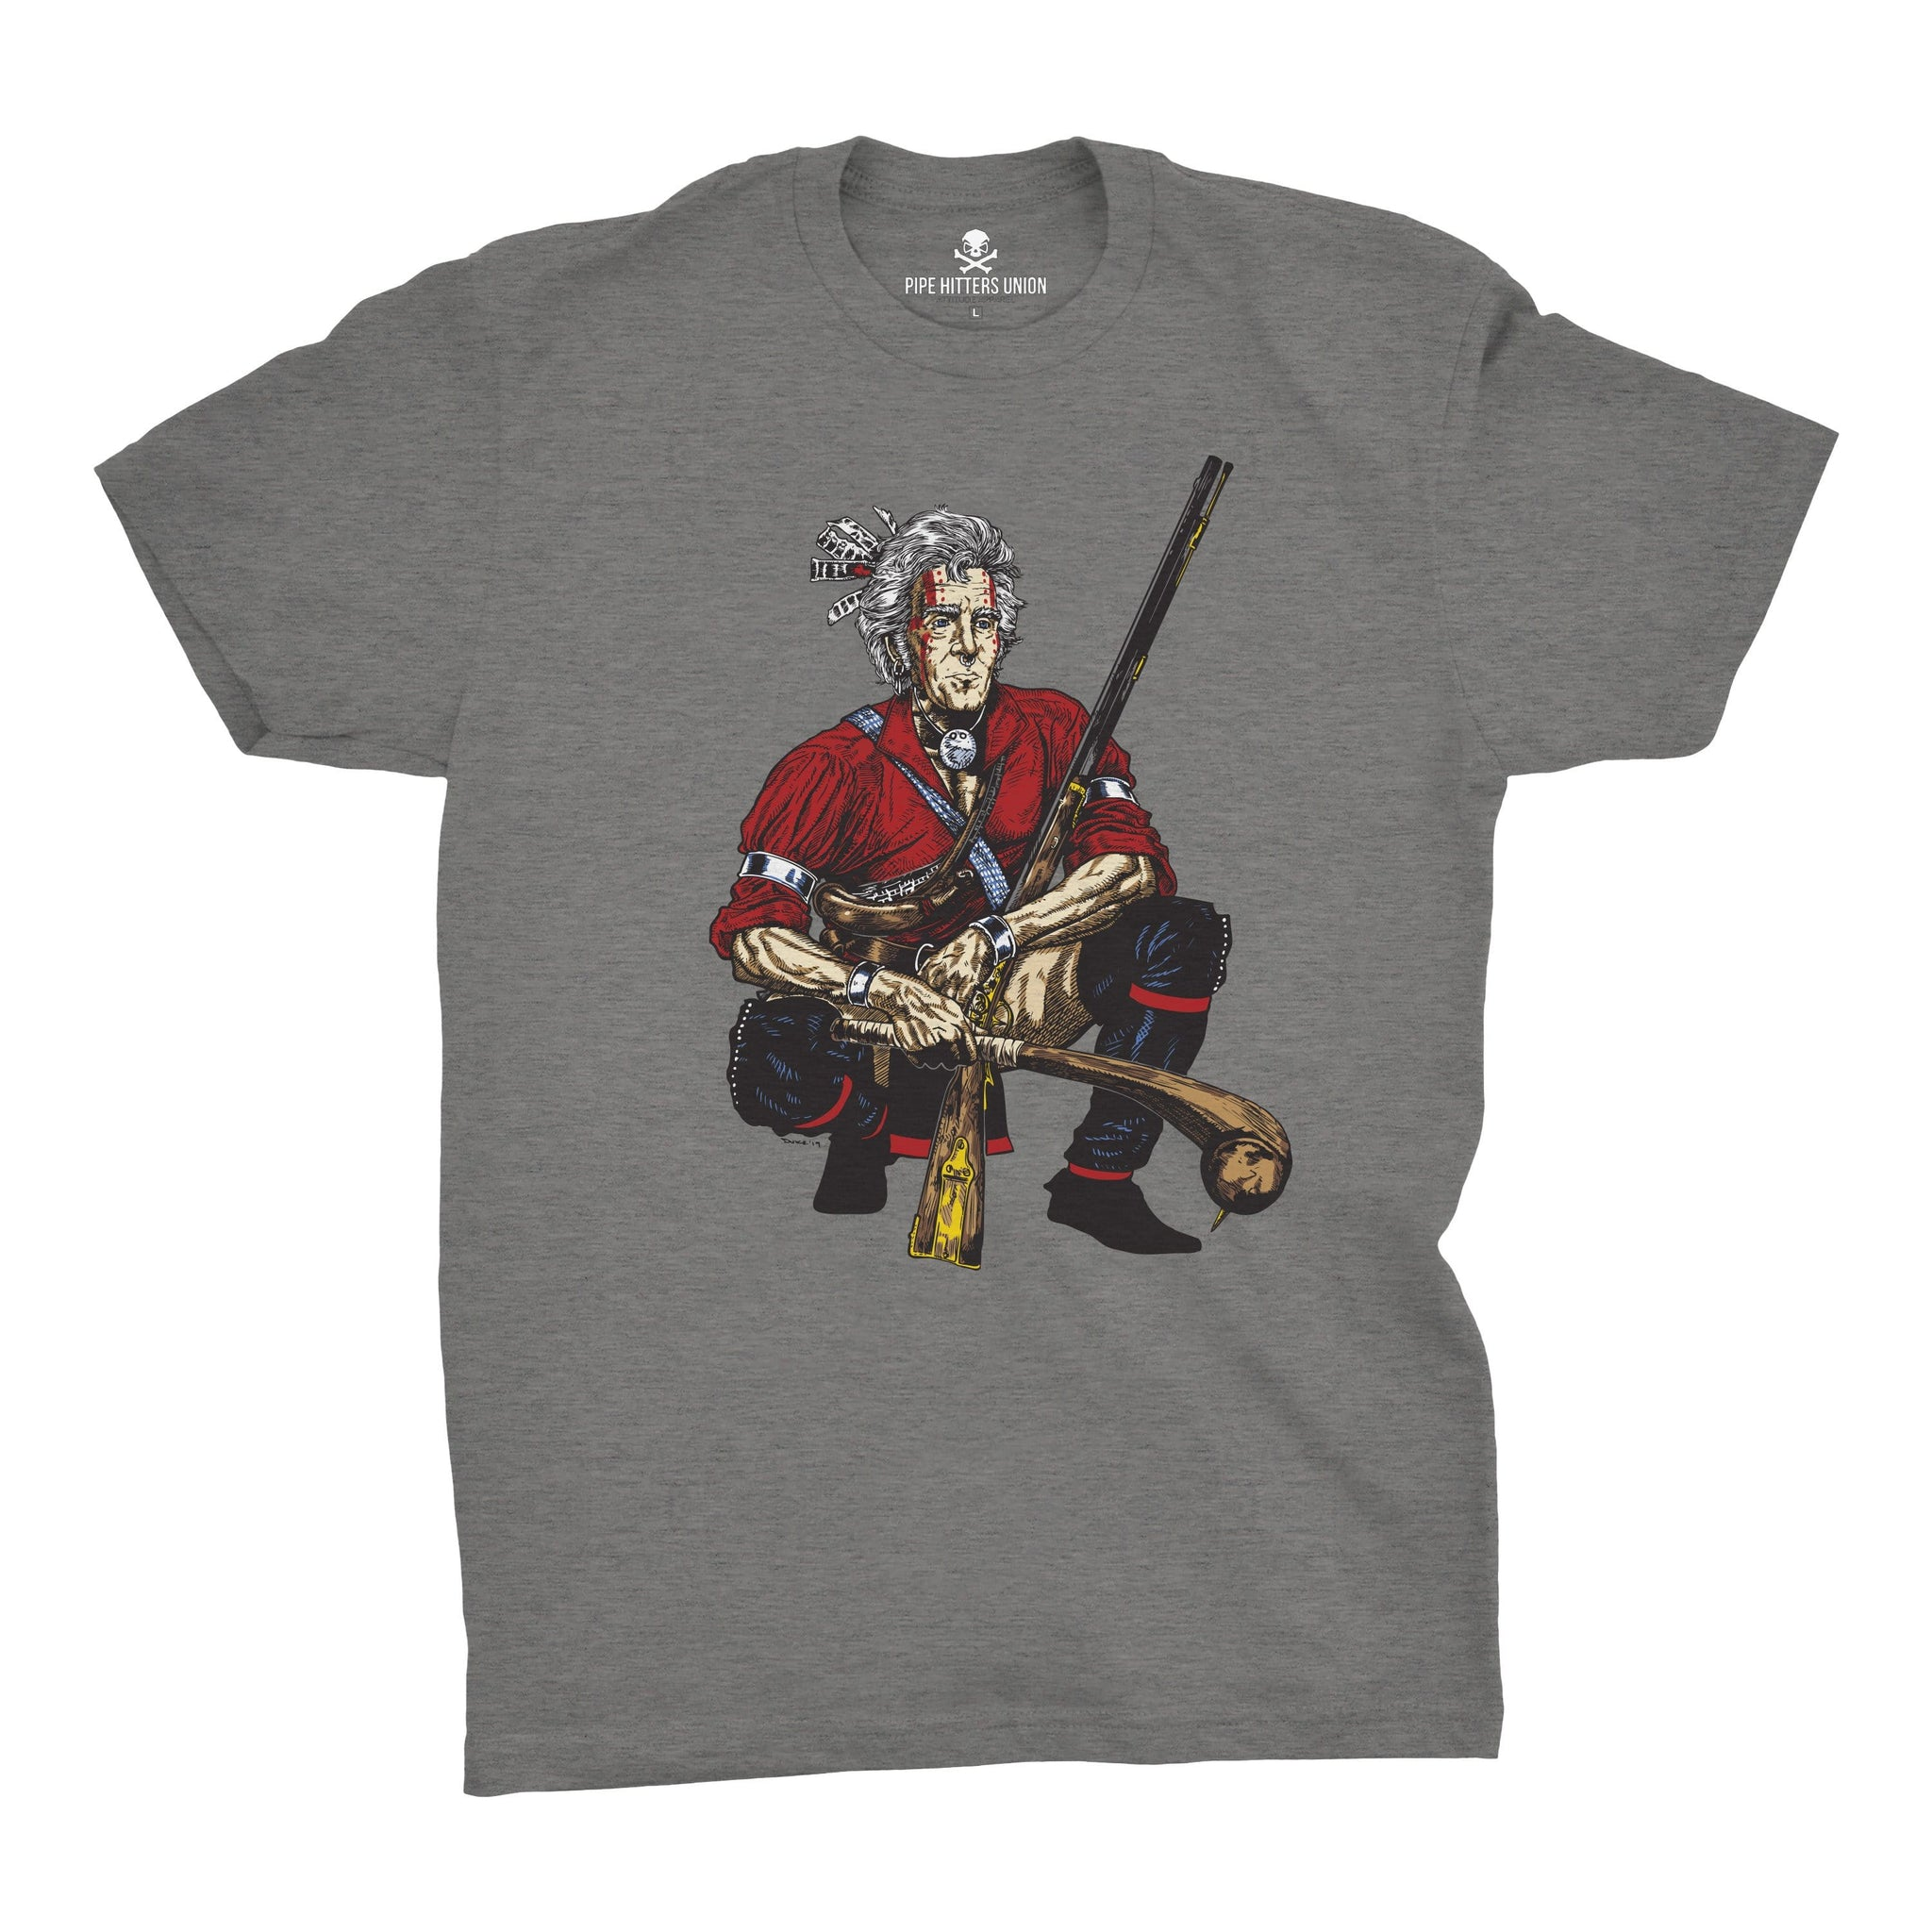 Original Pipe Hitter - Andrew Jackson - Grey - T-Shirts - Pipe Hitters Union